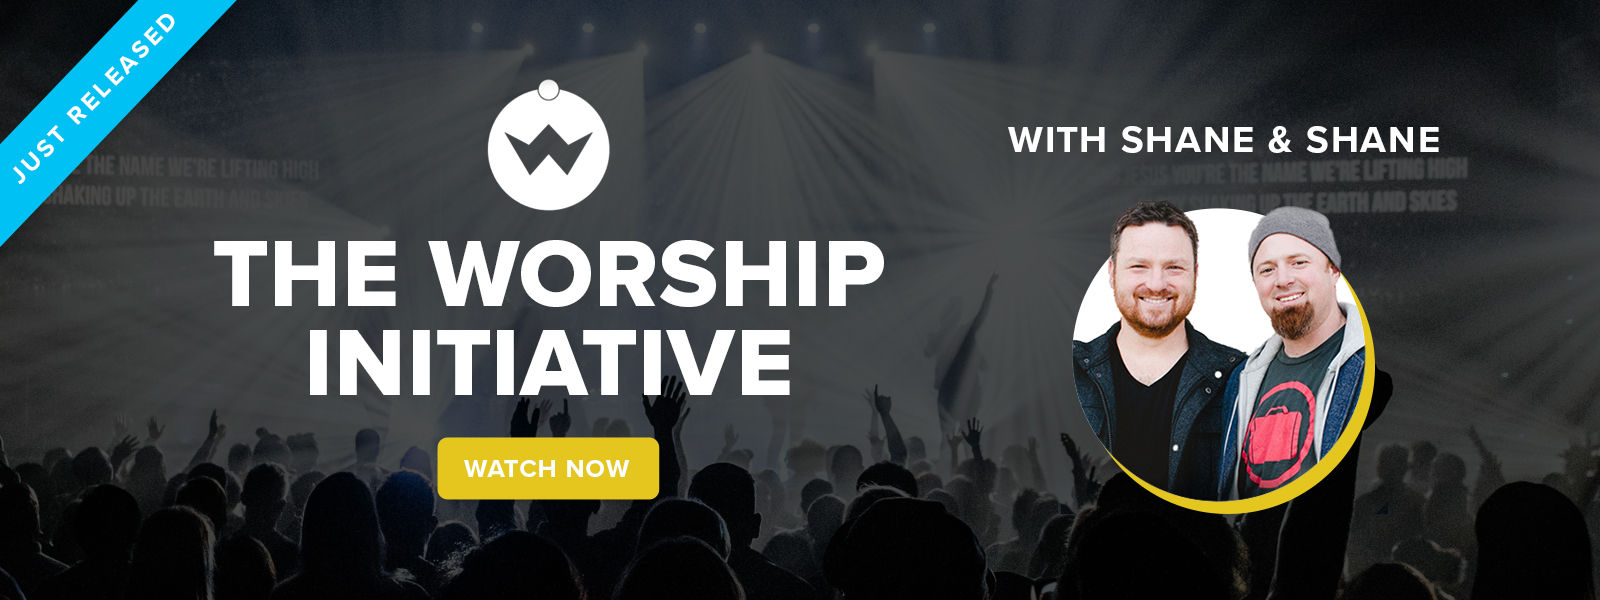 The Worship Initiative